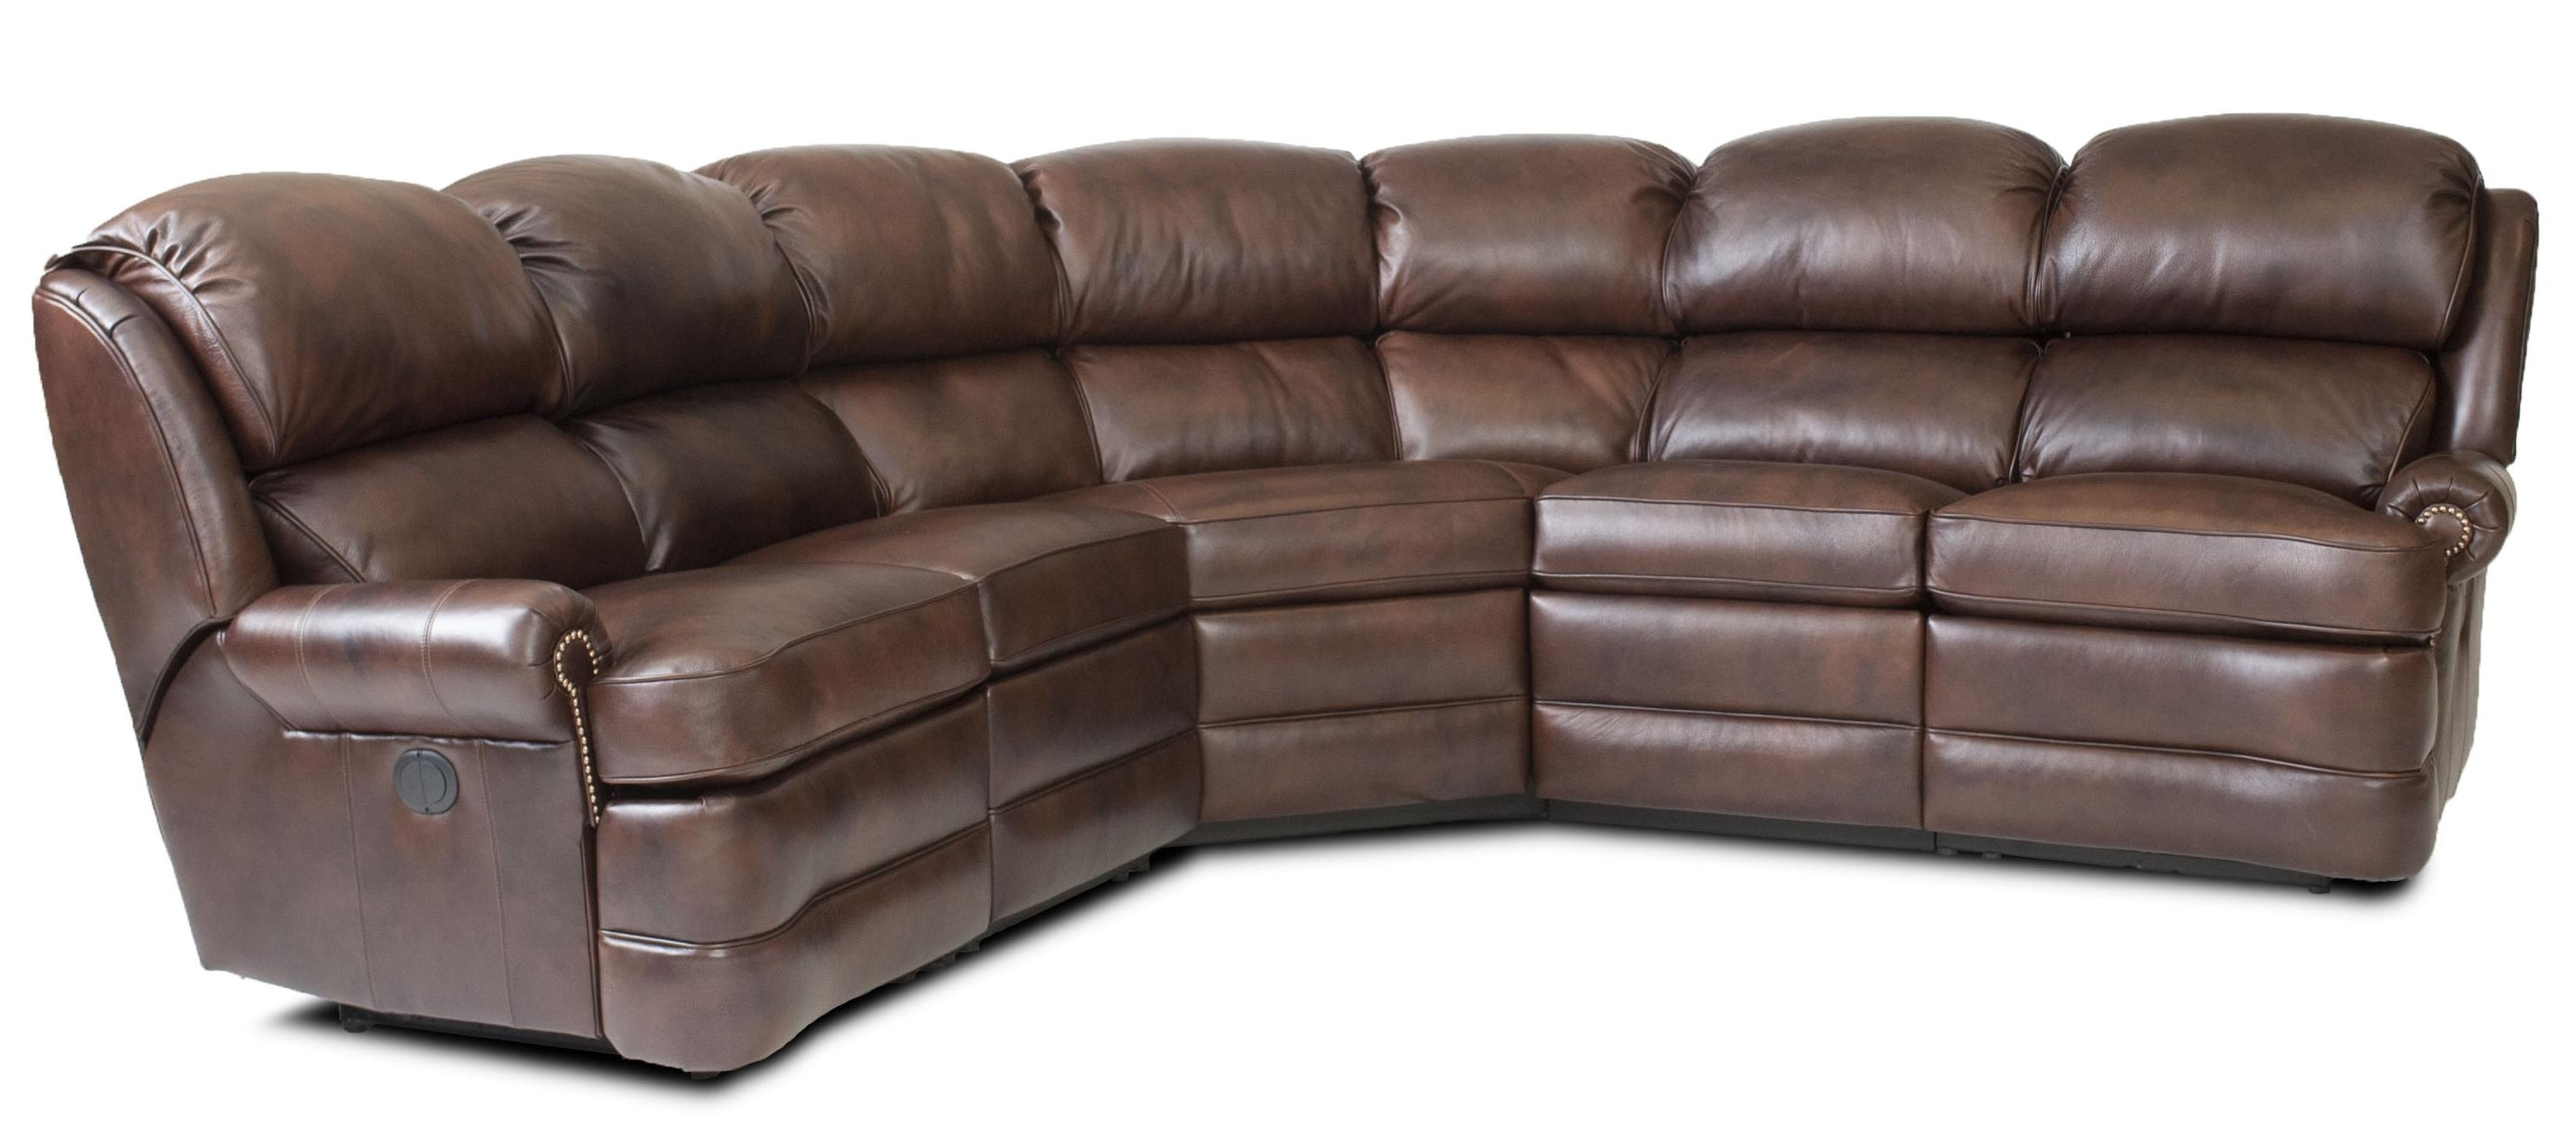 Most Current Overstuffed Sofas And Chairs Inside Transitional 5 Piece Reclining Sectional Sofa With Small Rolled (View 3 of 15)